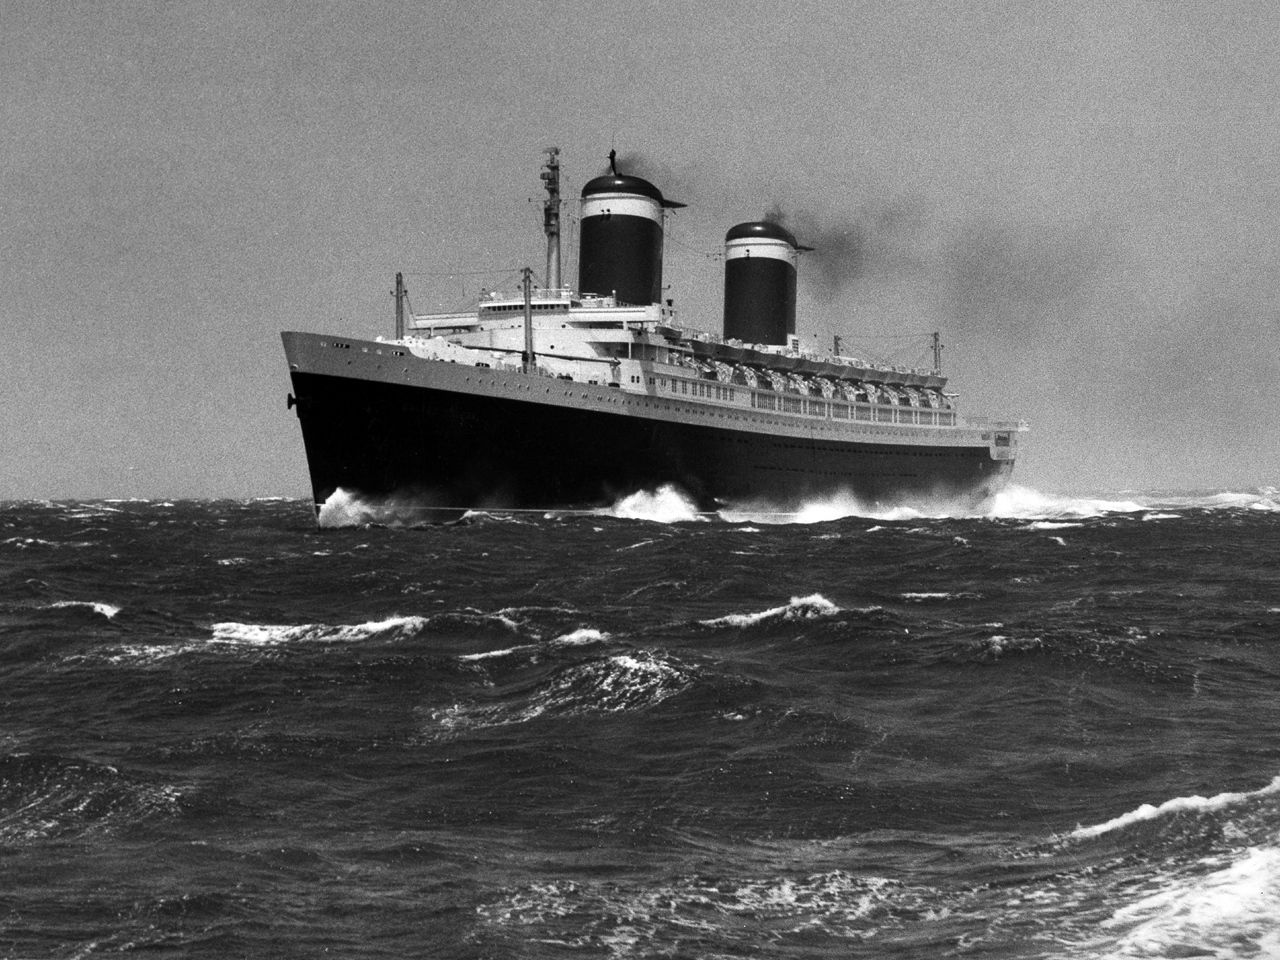 The majestic SS United States cuts through choppy seas with ease.